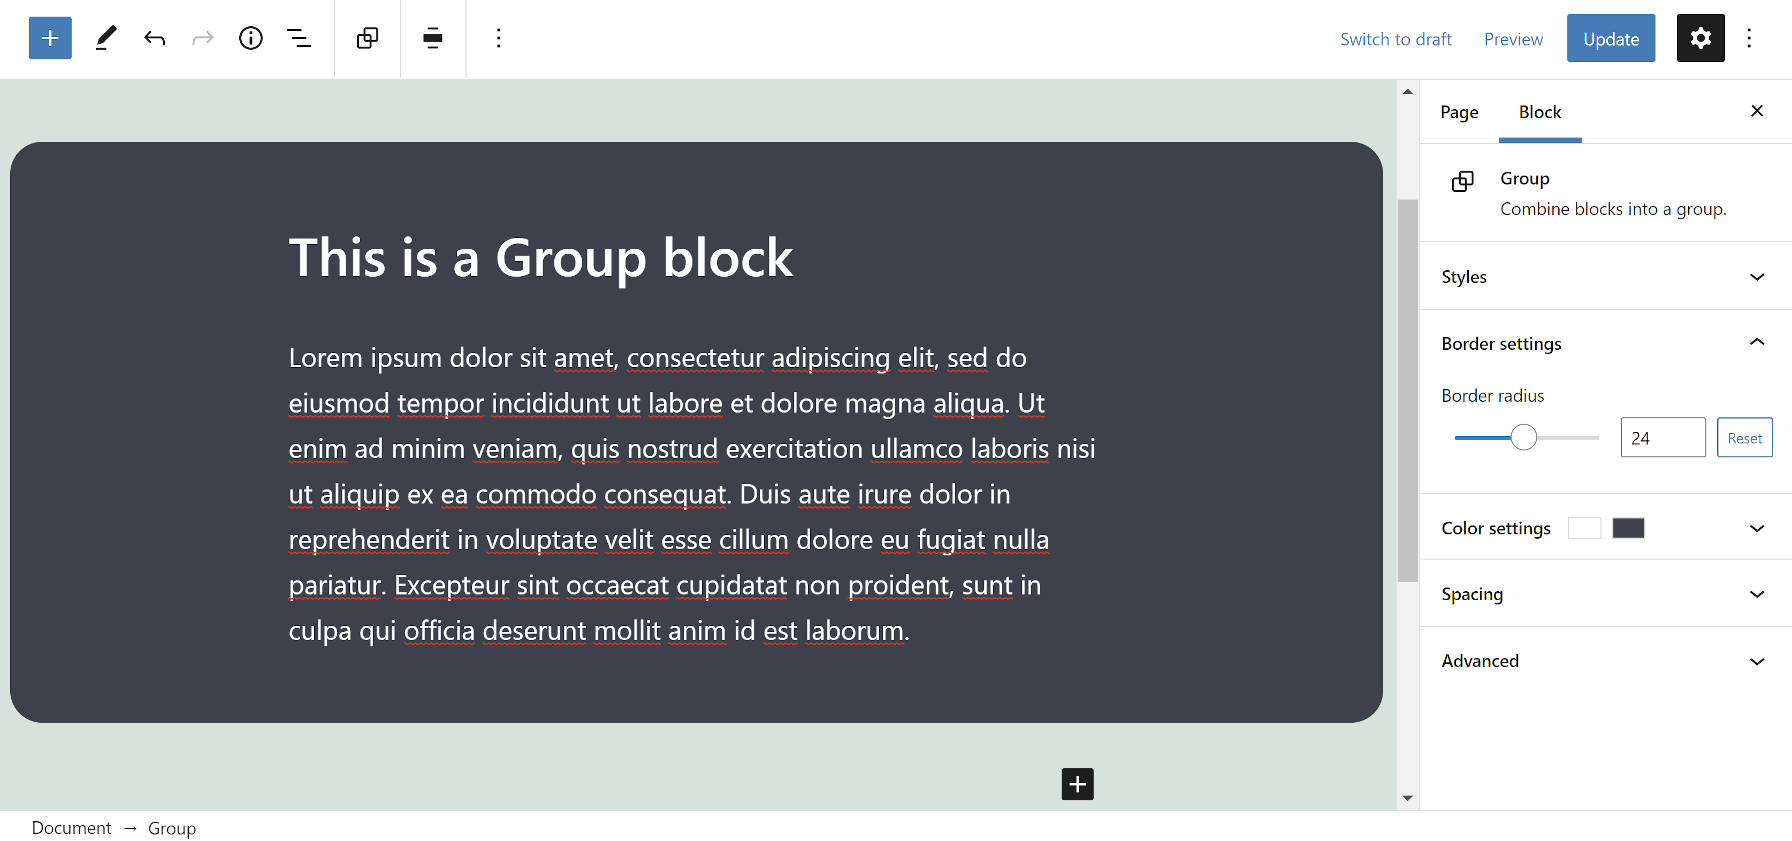 gutenberg-9-8-brings-rounded-borders-to-the-group-block-and-moves-the-site-editor-canvas-into-an-inline-frame-2 Gutenberg 9.8 Brings Rounded Borders To the Group Block and Moves the Site Editor Canvas Into an Inline Frame